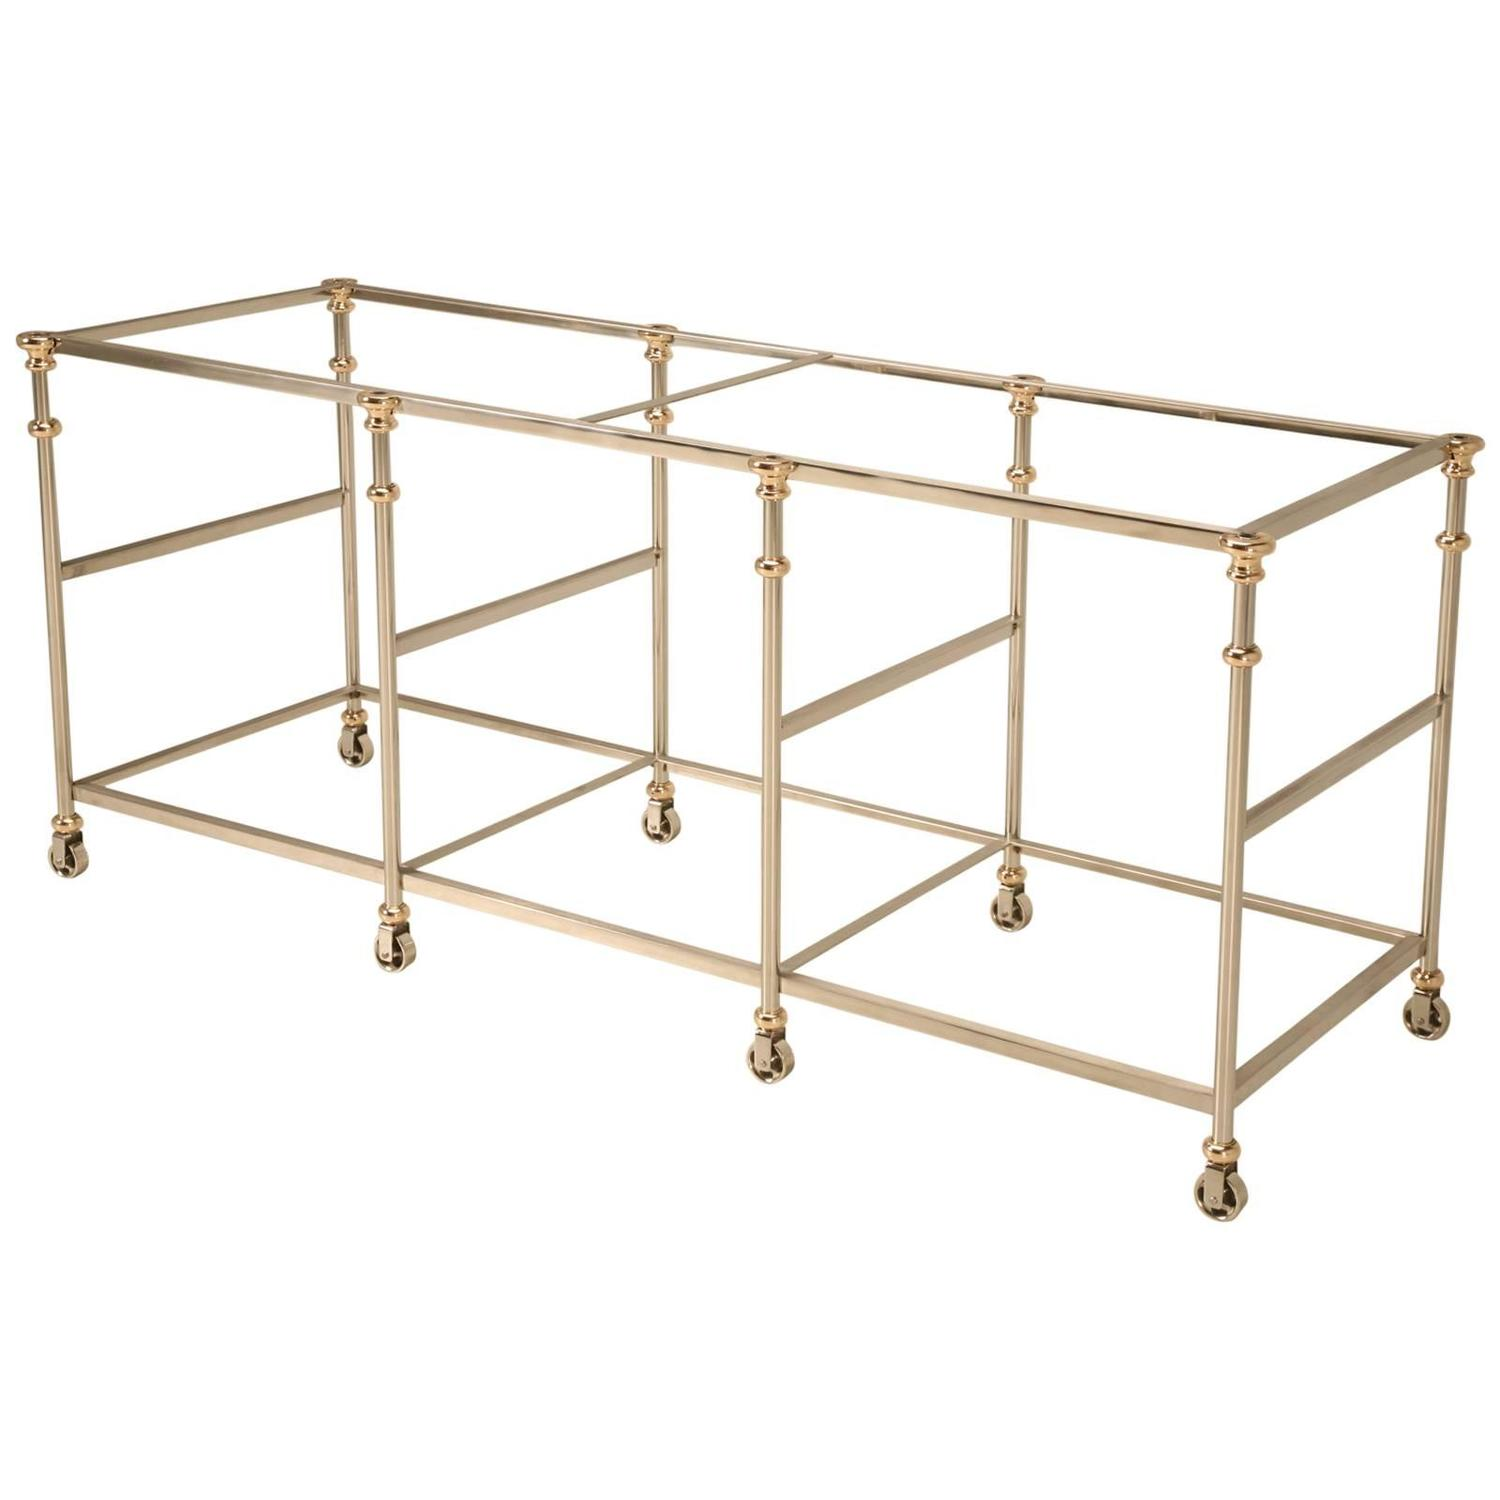 Kitchen Island Frame: Kitchen Island Frame Made From Stainless Steel And Bronze At 1stdibs